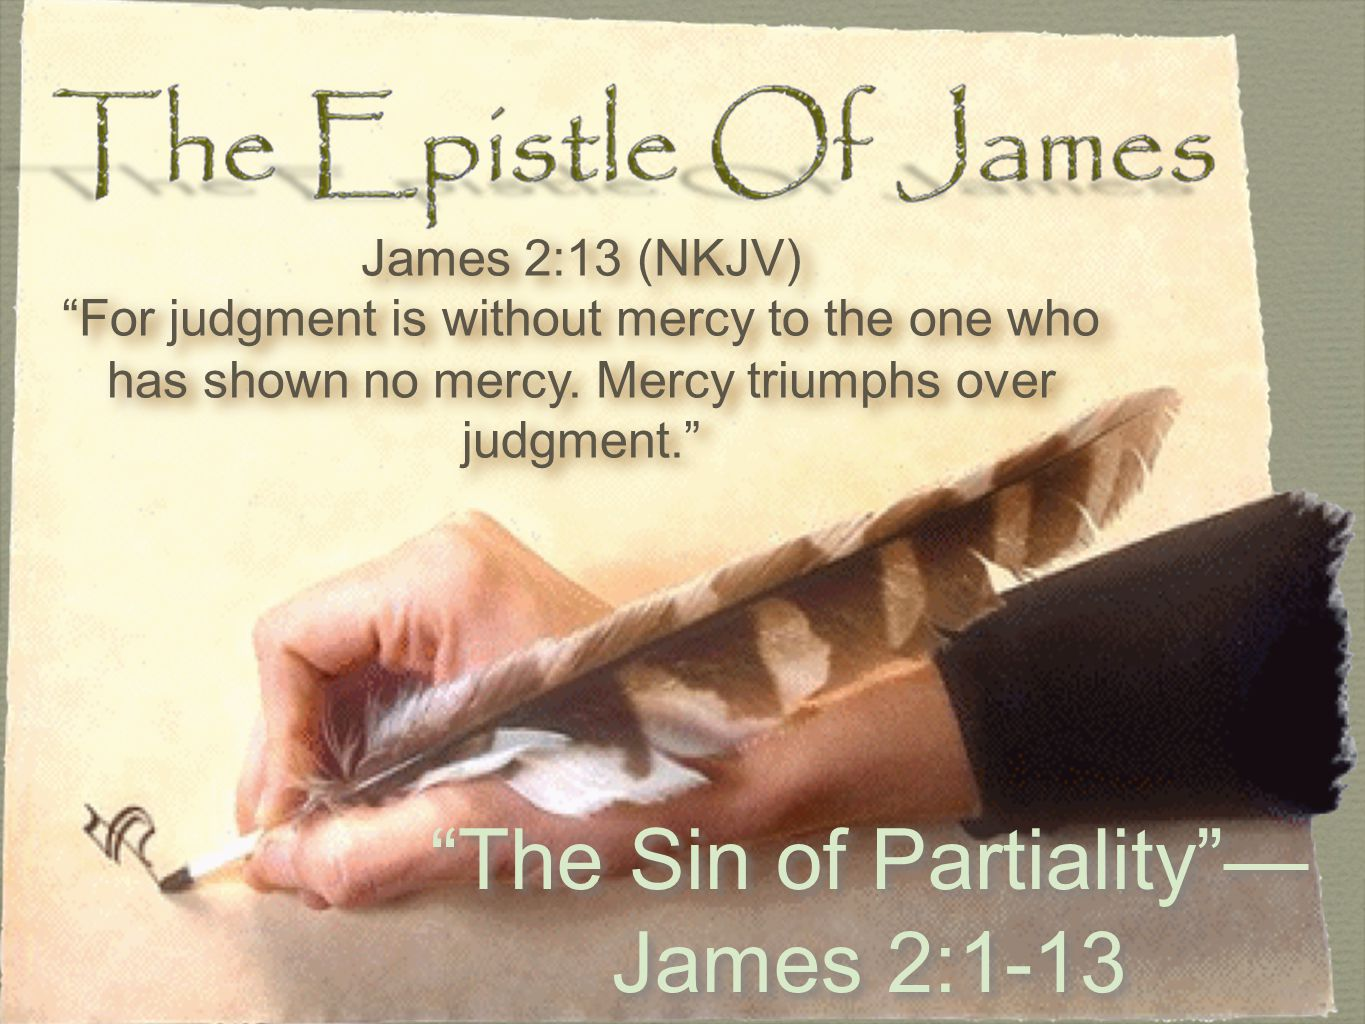 Partiality Is Contrary To The Faith We Have In Jesus (2:1-4) ✦ The problem with this standard should be evident: ✴ Judgment & treatment should not be based on character-neutral attributes.